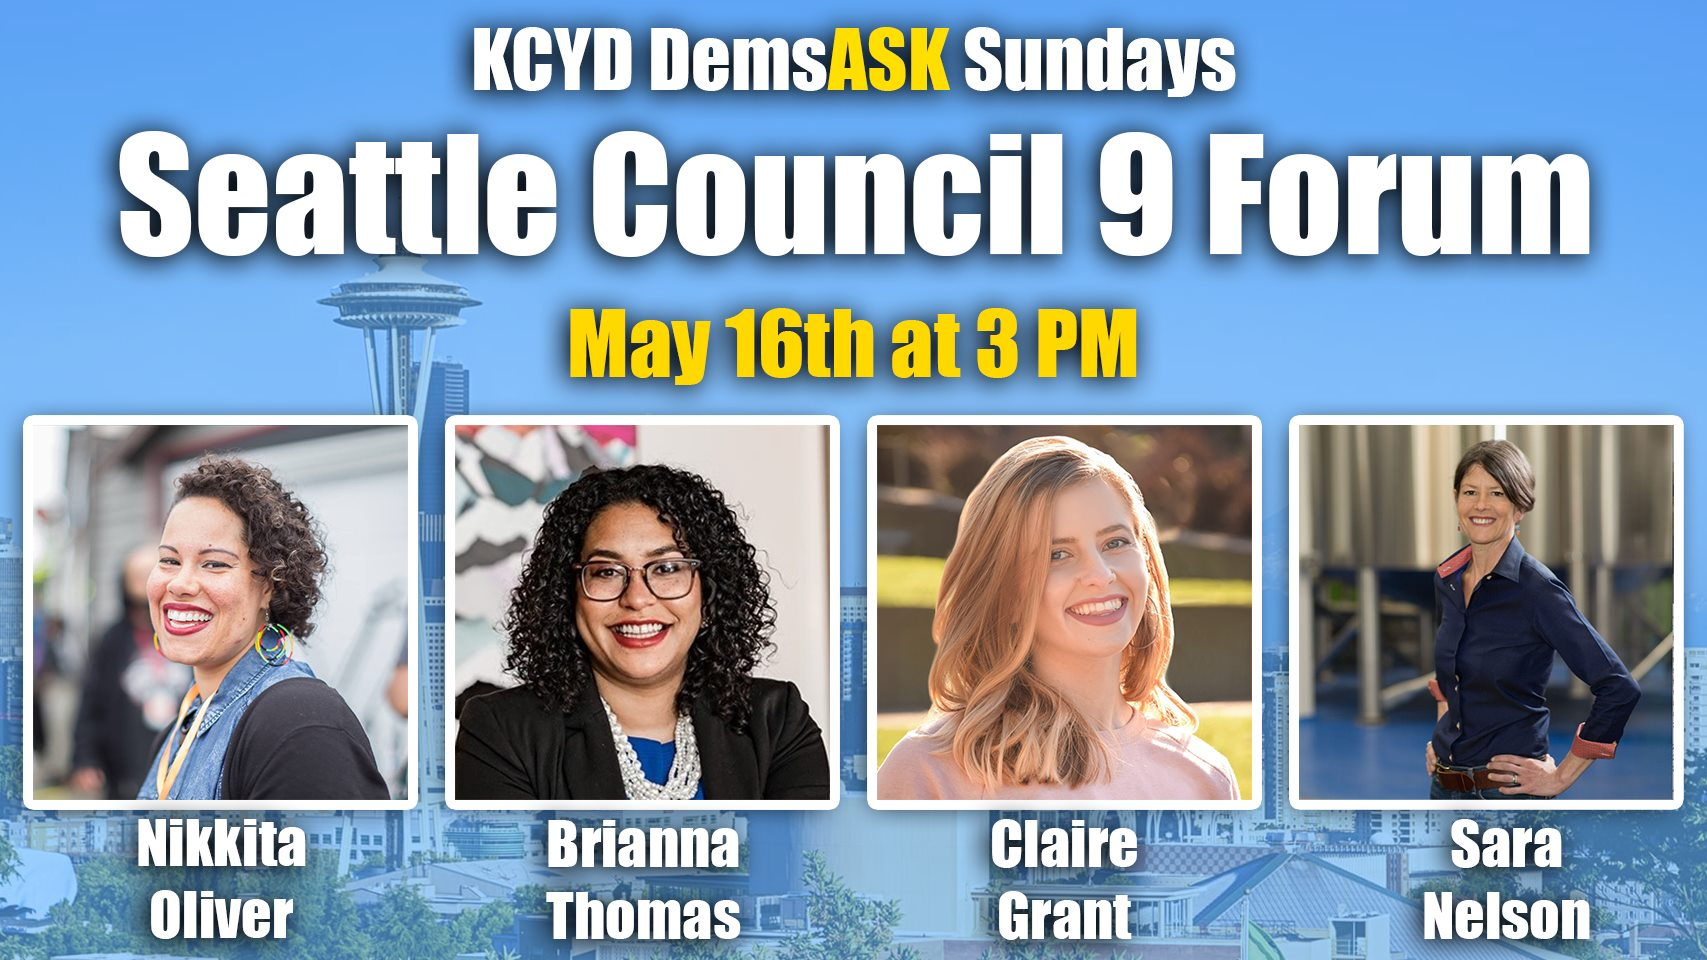 Seattle Council 9 Forum - May 16th at 3 PM, with Nikkita Oliver, Brianna Thomas, Claire Grant, and Sara Nelson